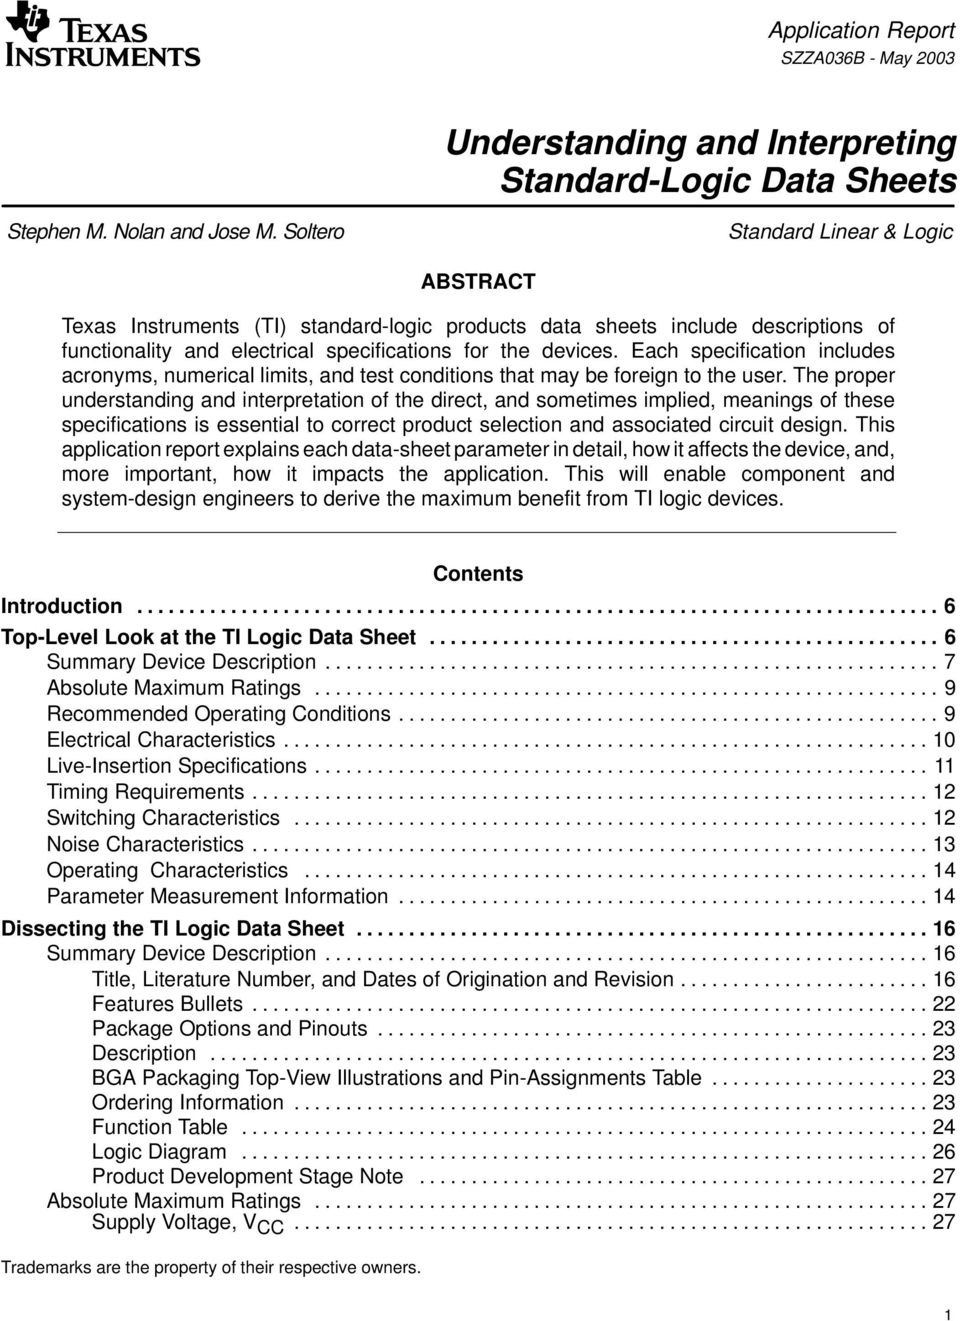 Understanding and Interpreting Standard-Logic Data Sheets - PDF